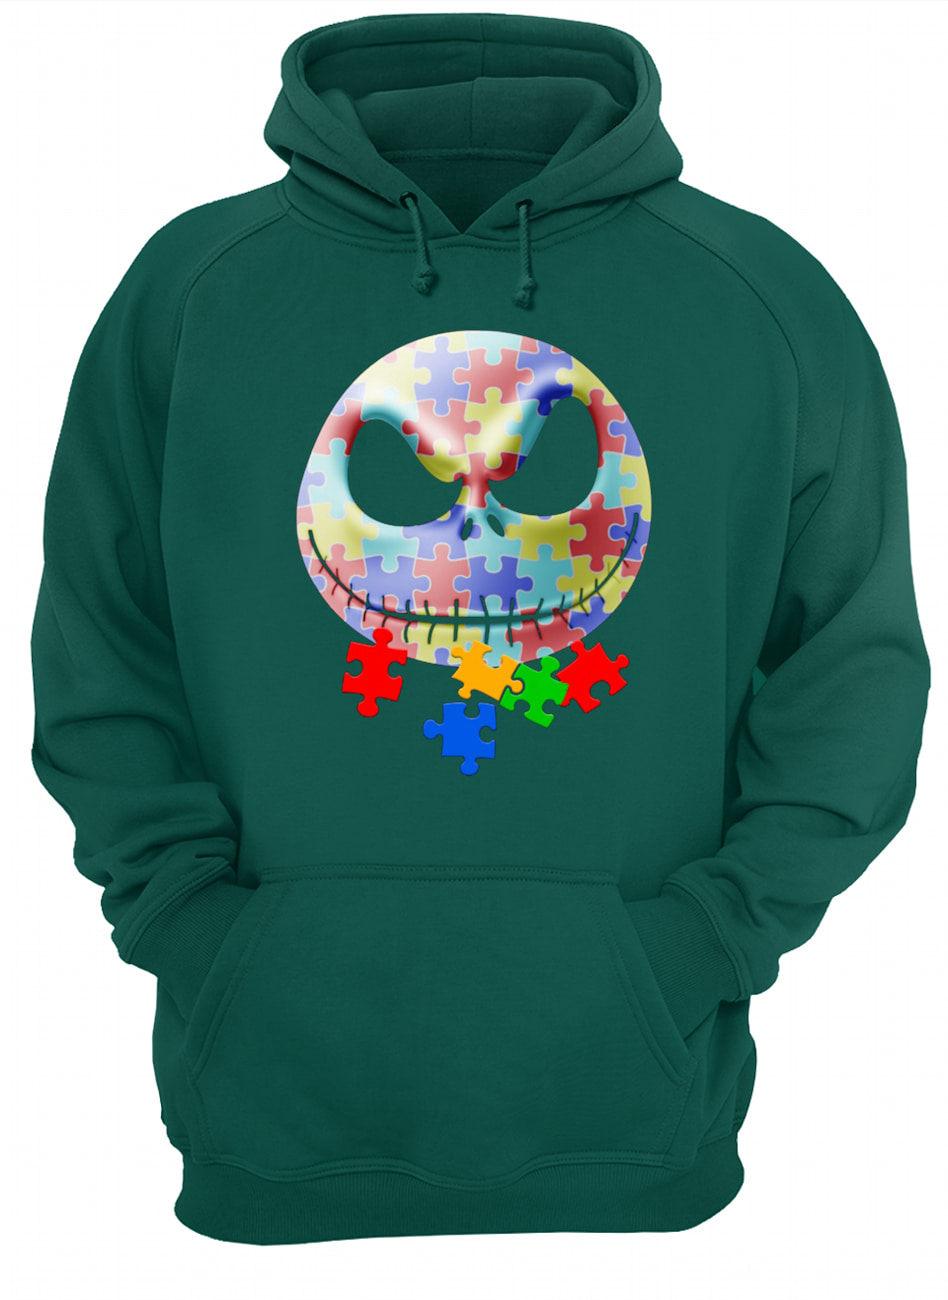 Jack skellington autism awareness hoodie